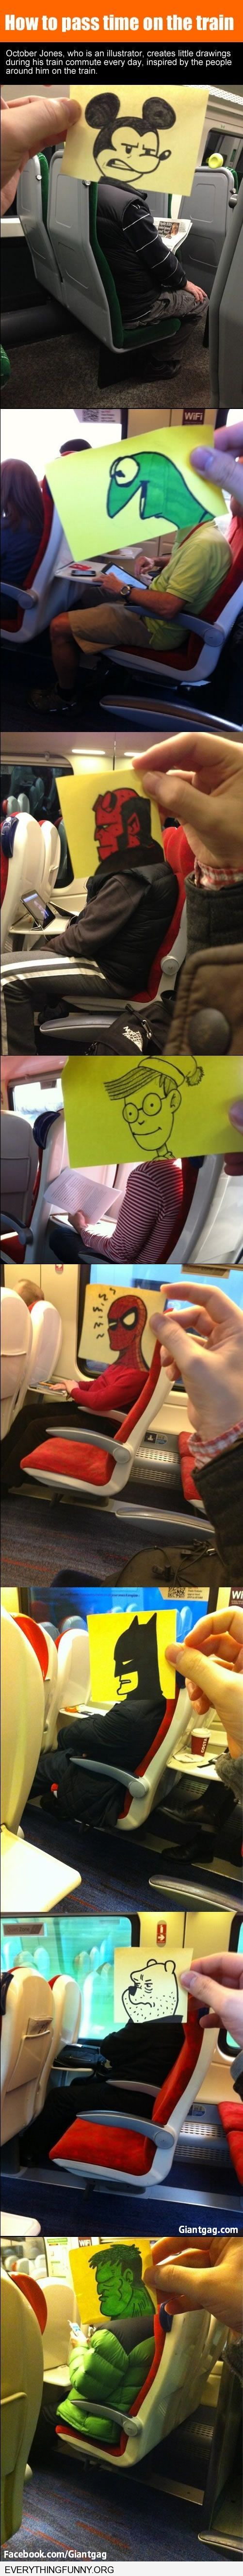 funny caption guy draws heads and puts them on peoples bodies on plane to entertain himself